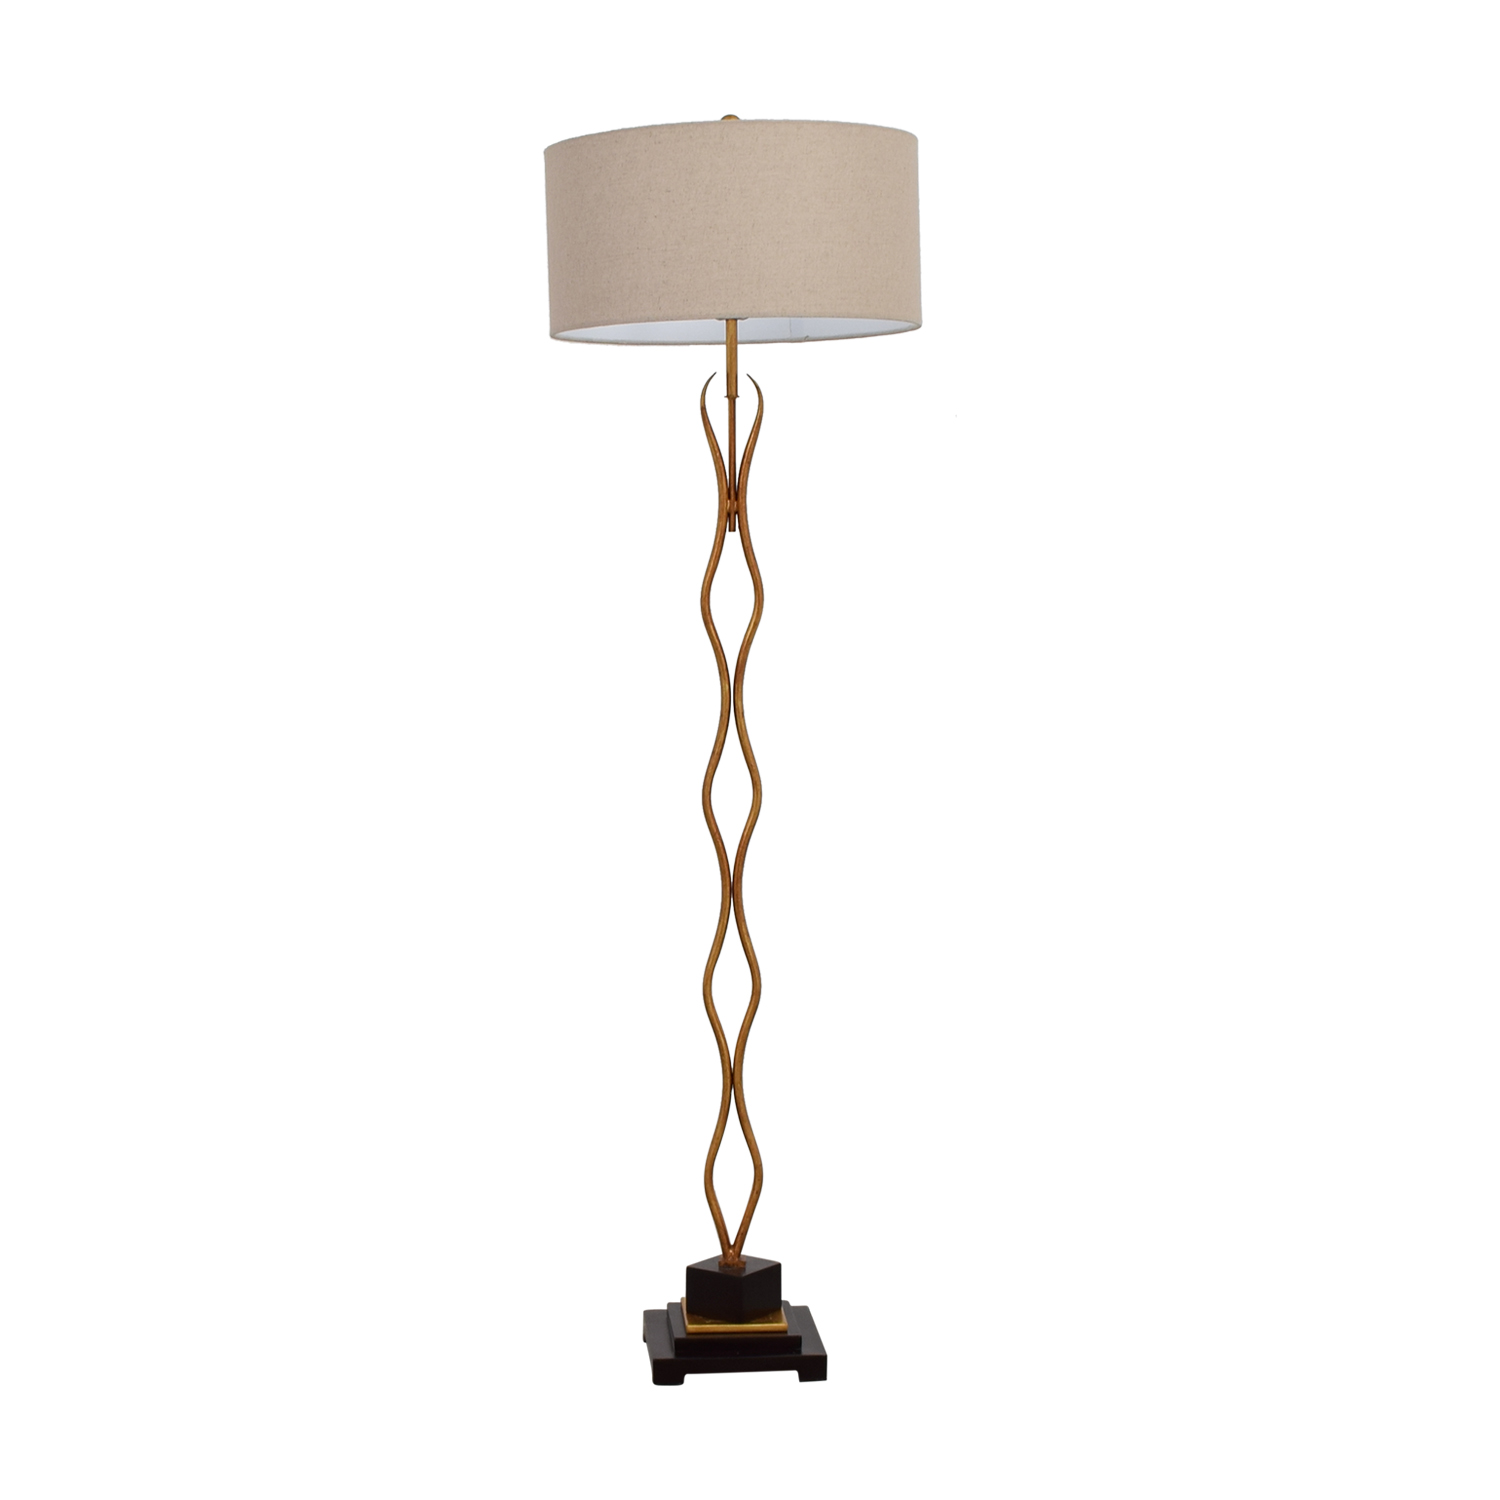 Wayfair Wayfair Metal Wavy Gold Floor Lamp on sale